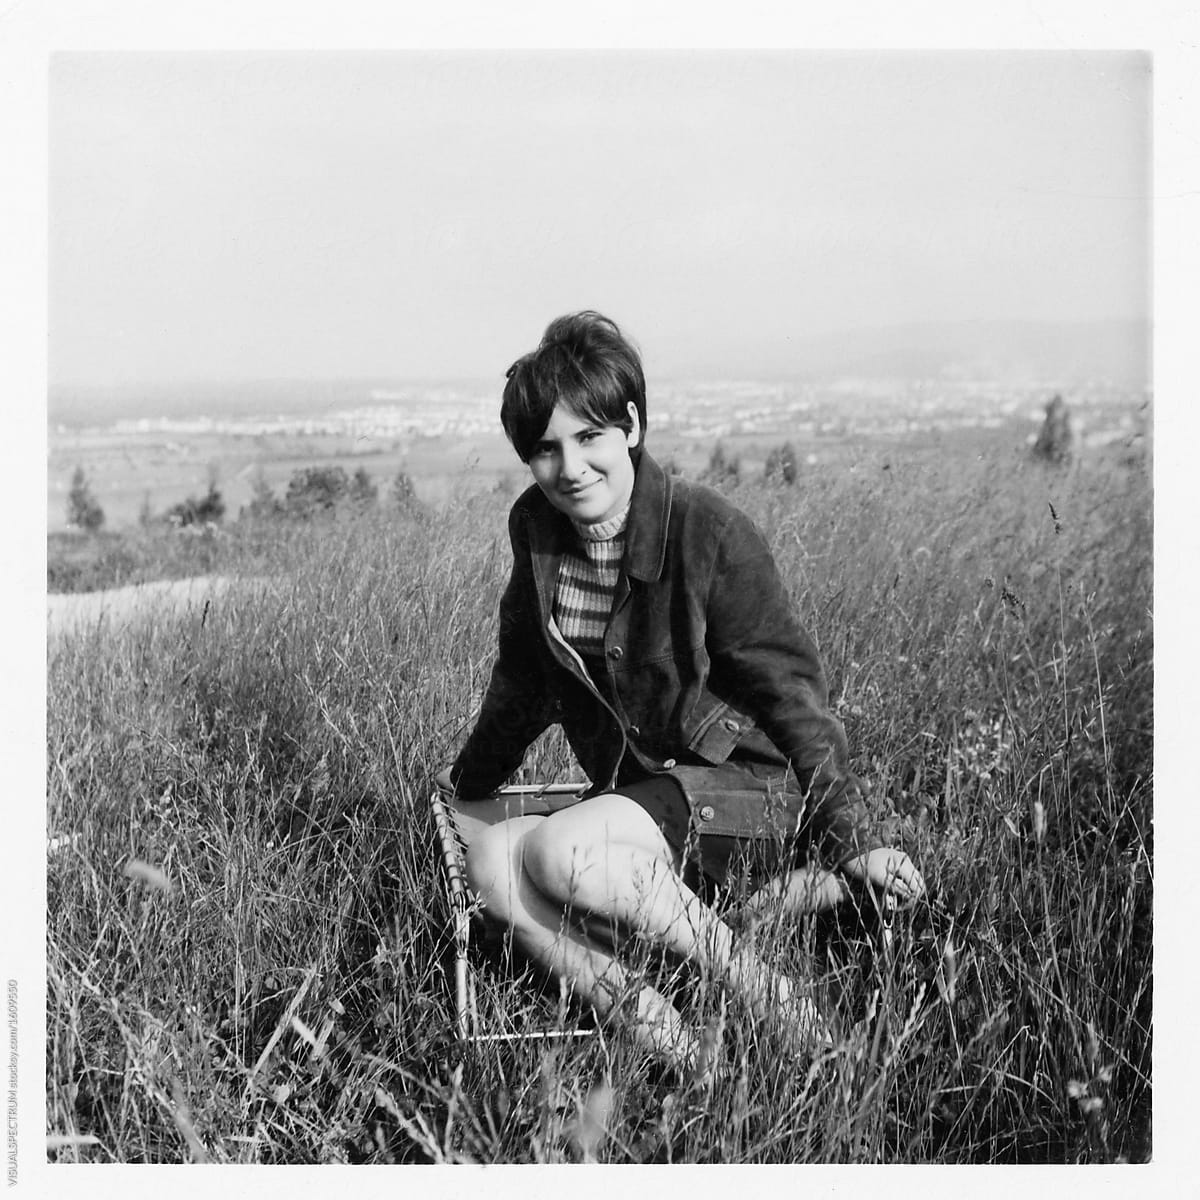 Scan of old 1960s black and white photograph of young woman sitt by visualspectrum for stocksy